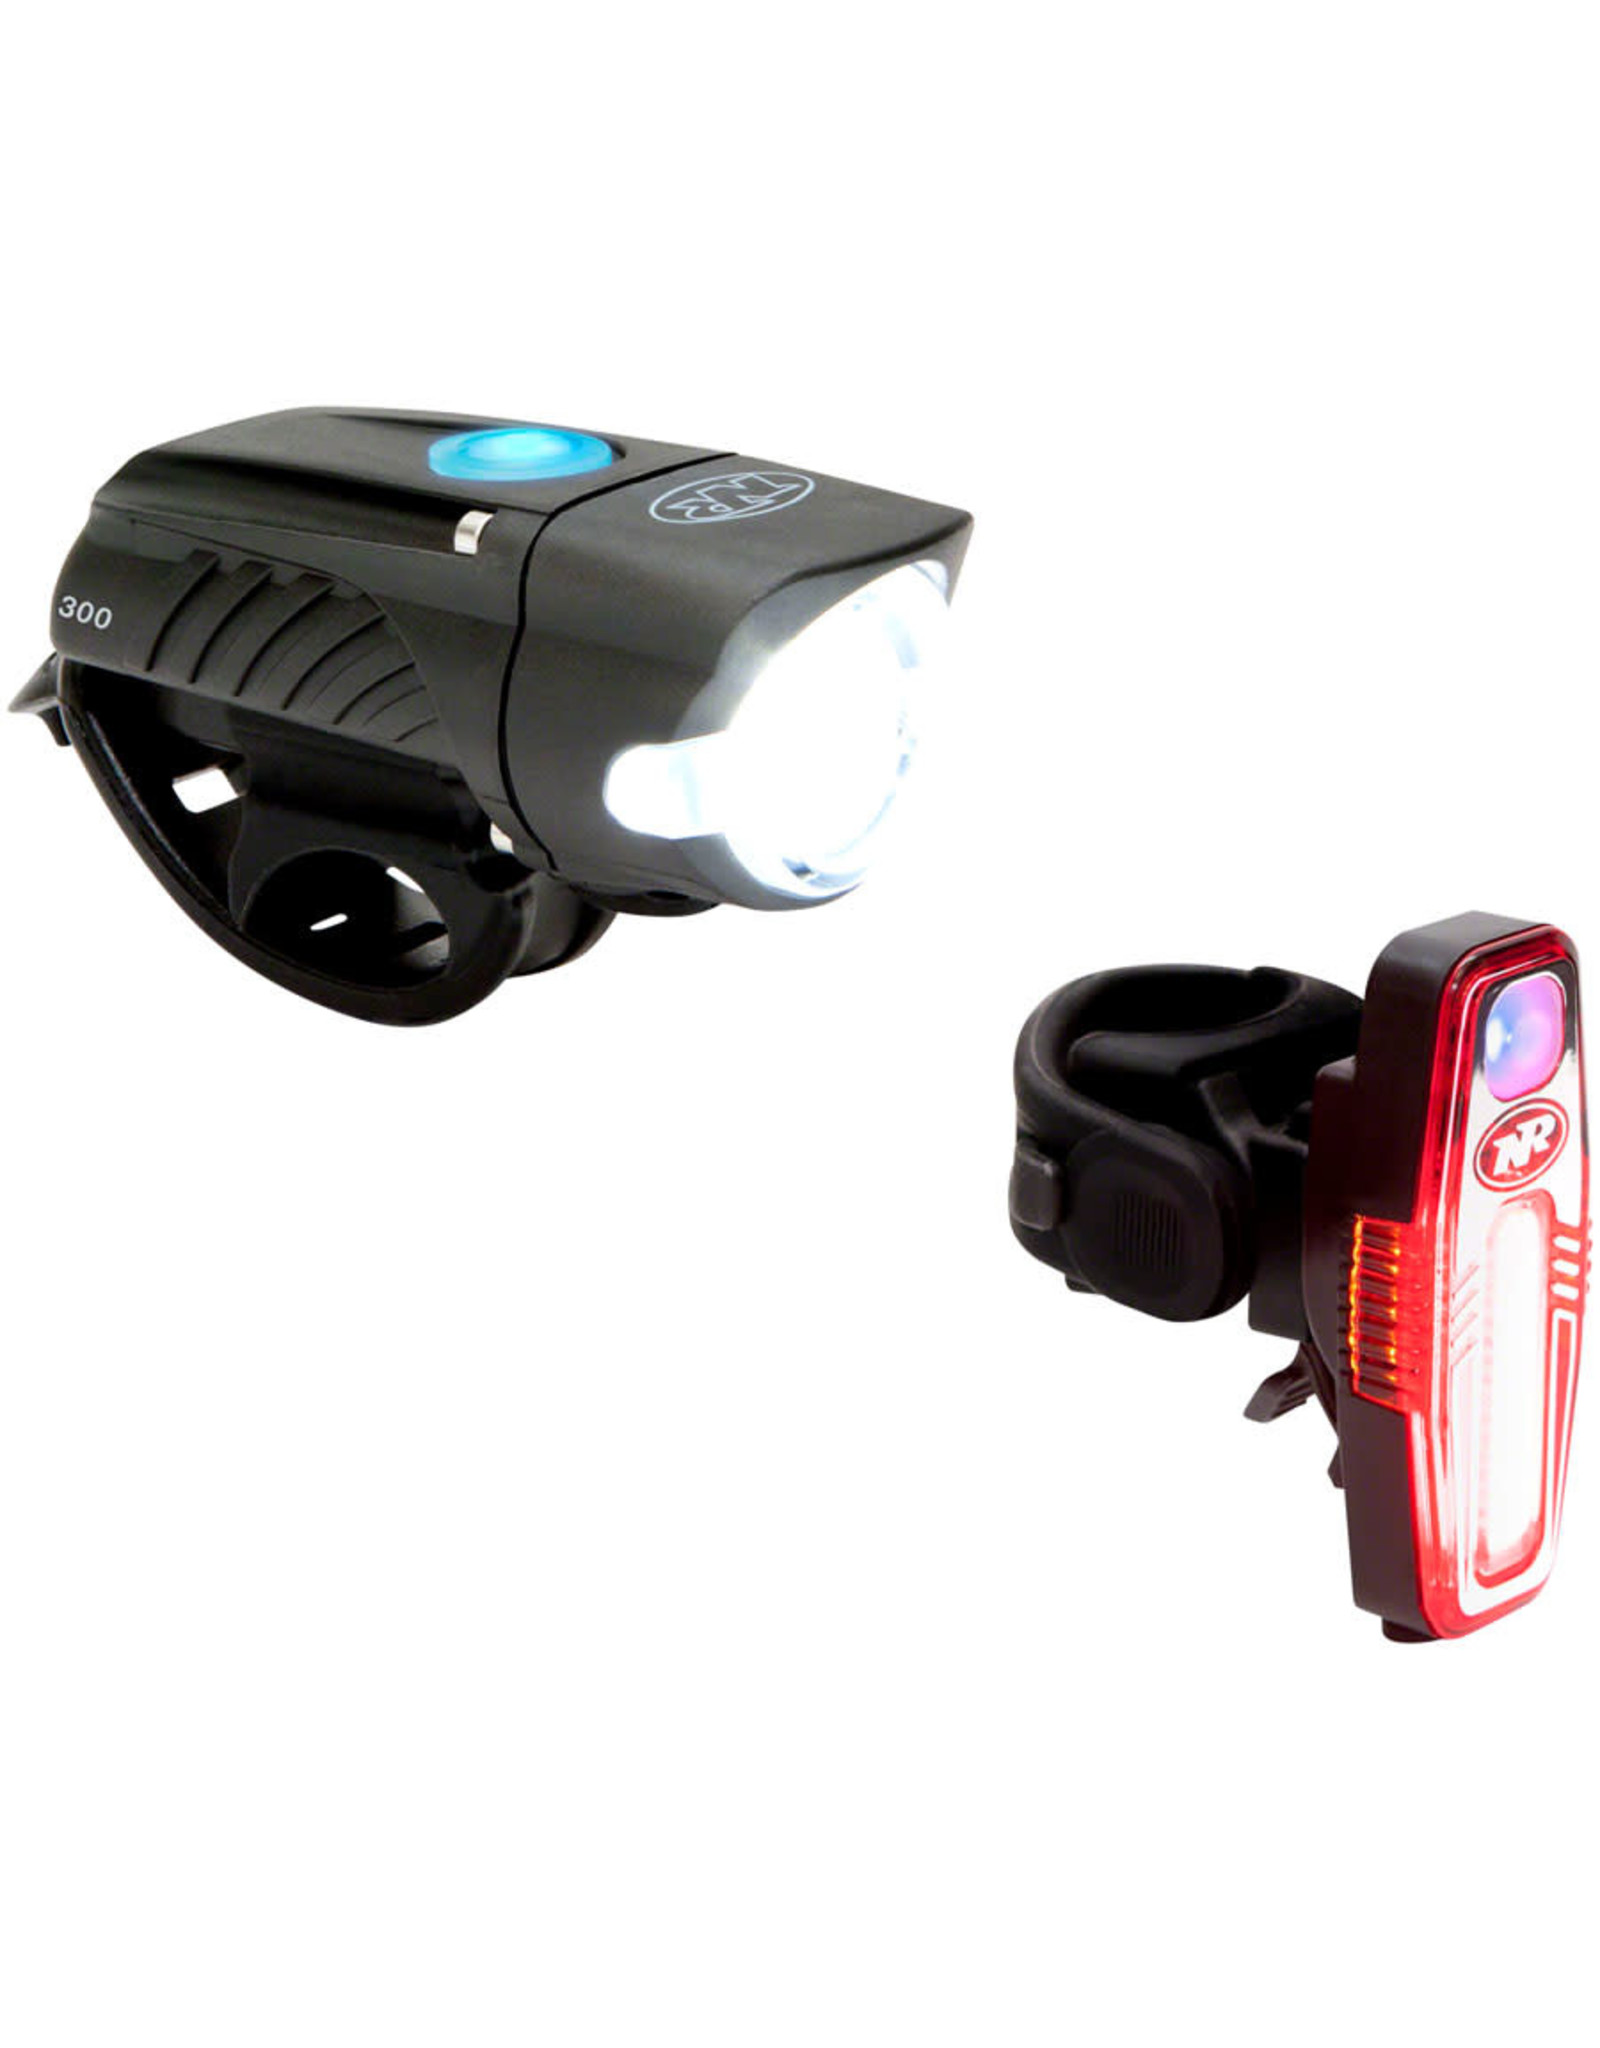 NiteRider NiteRider Swift 300 and Sabre 80 Headlight and Taillight Set